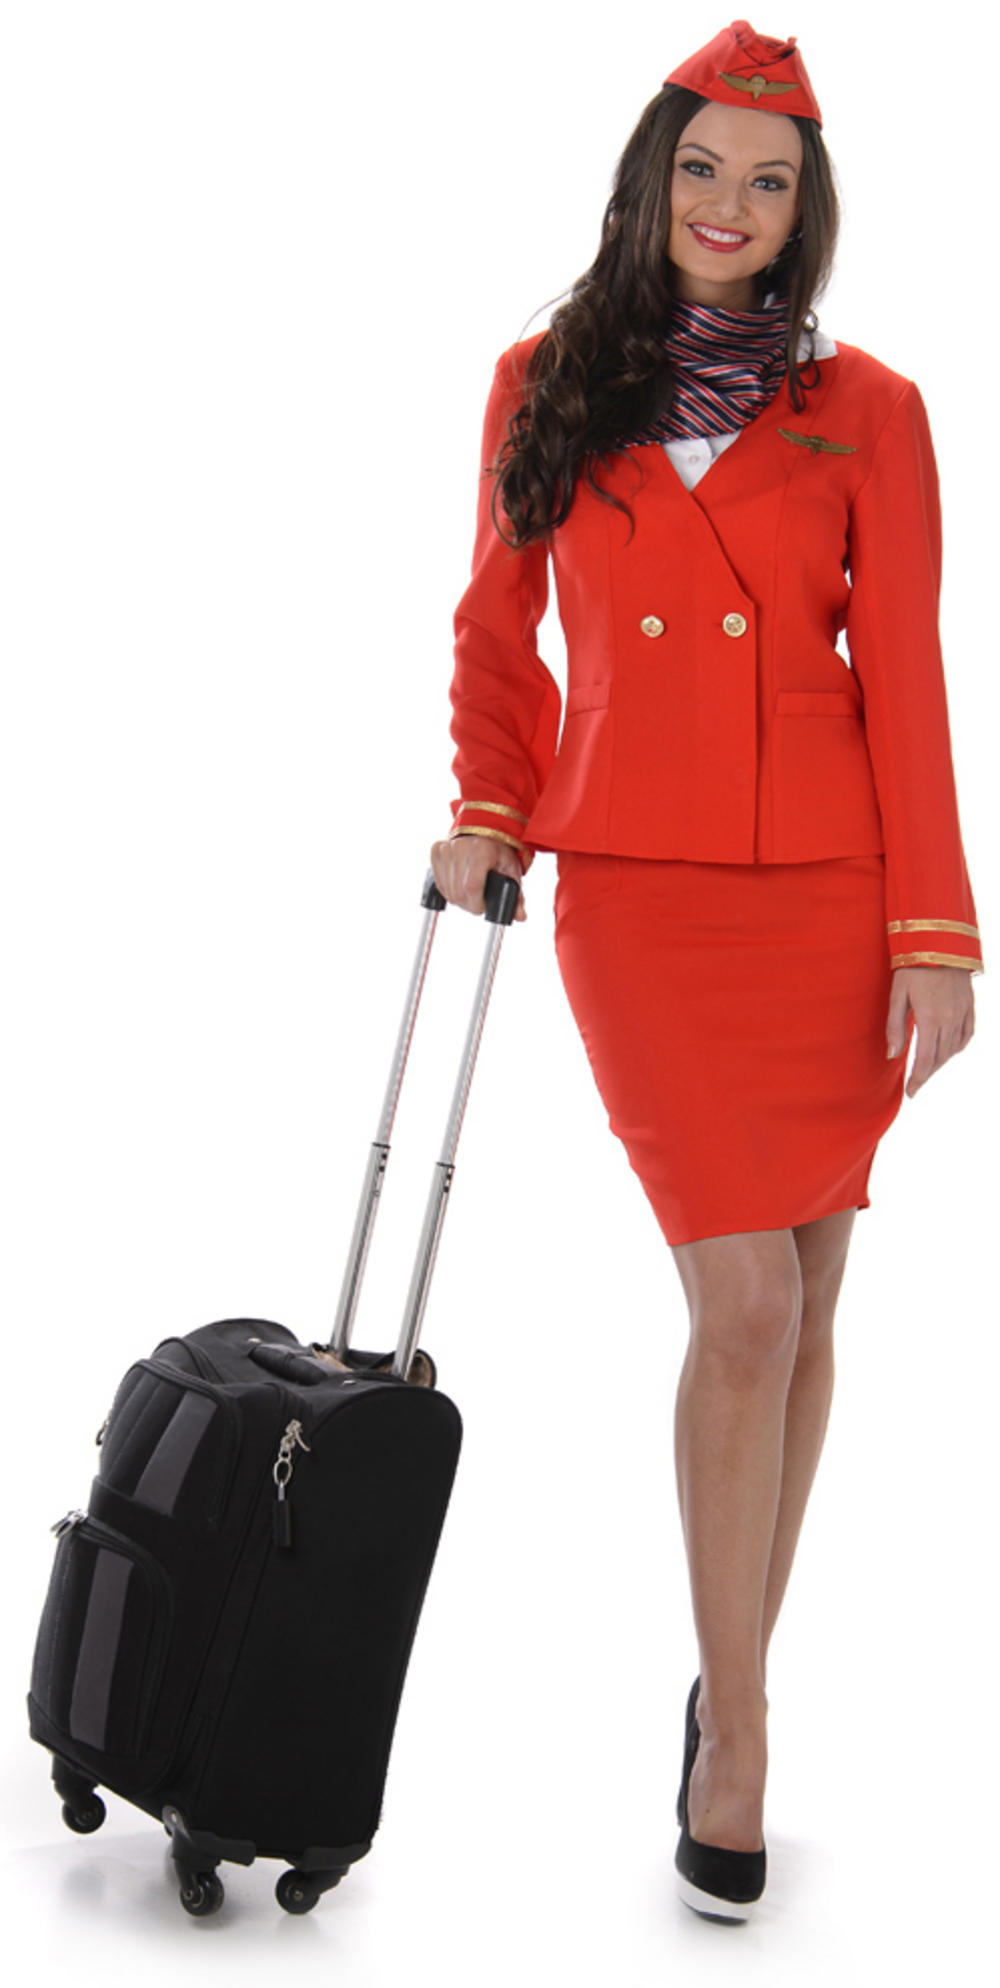 Red Flight Attendant Ladies Costume